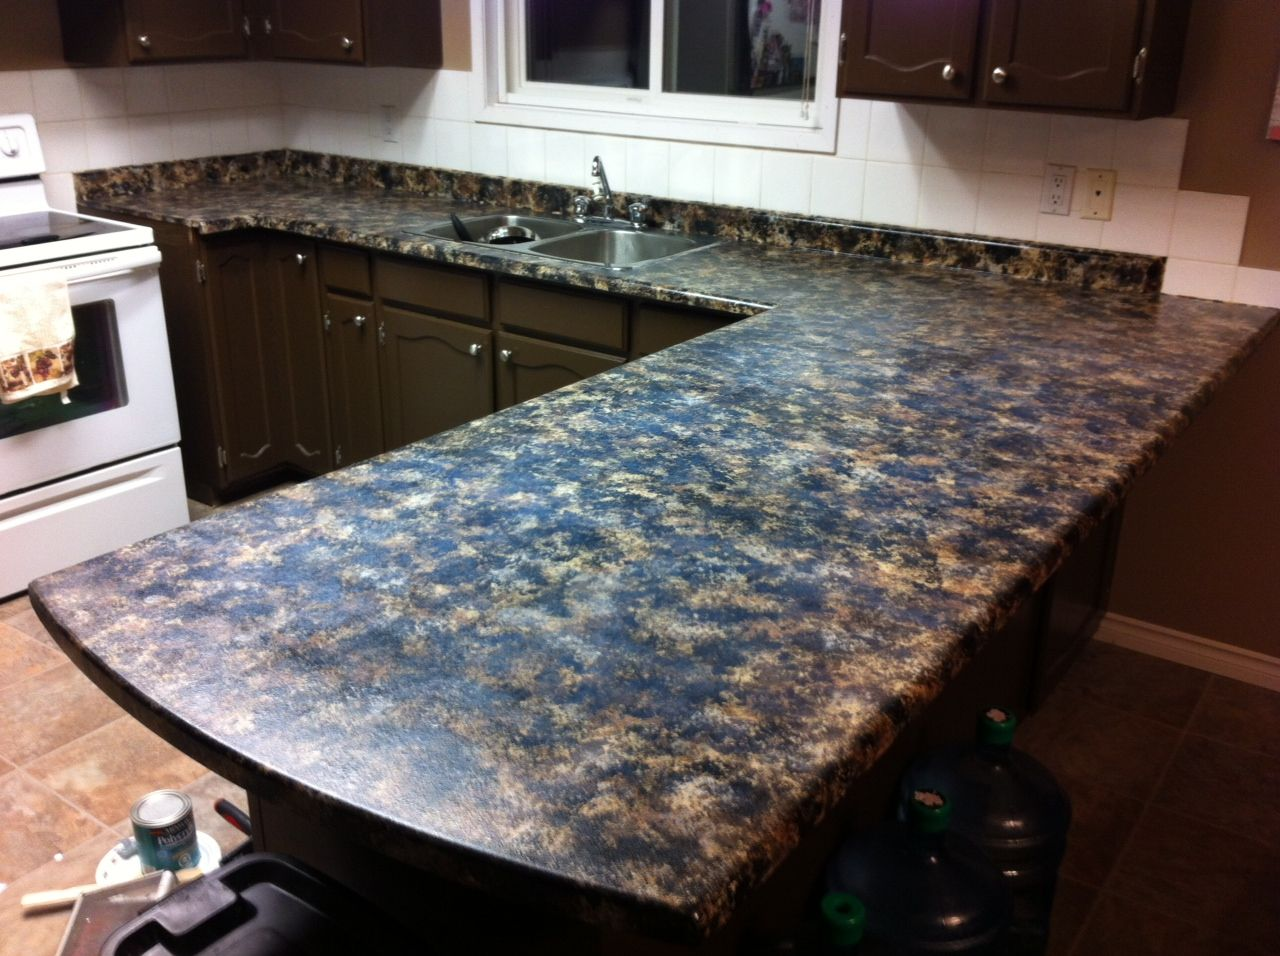 How To Repair Marble Countertops Diy Faux Granite Countertops Acrylic Paint And A Sea